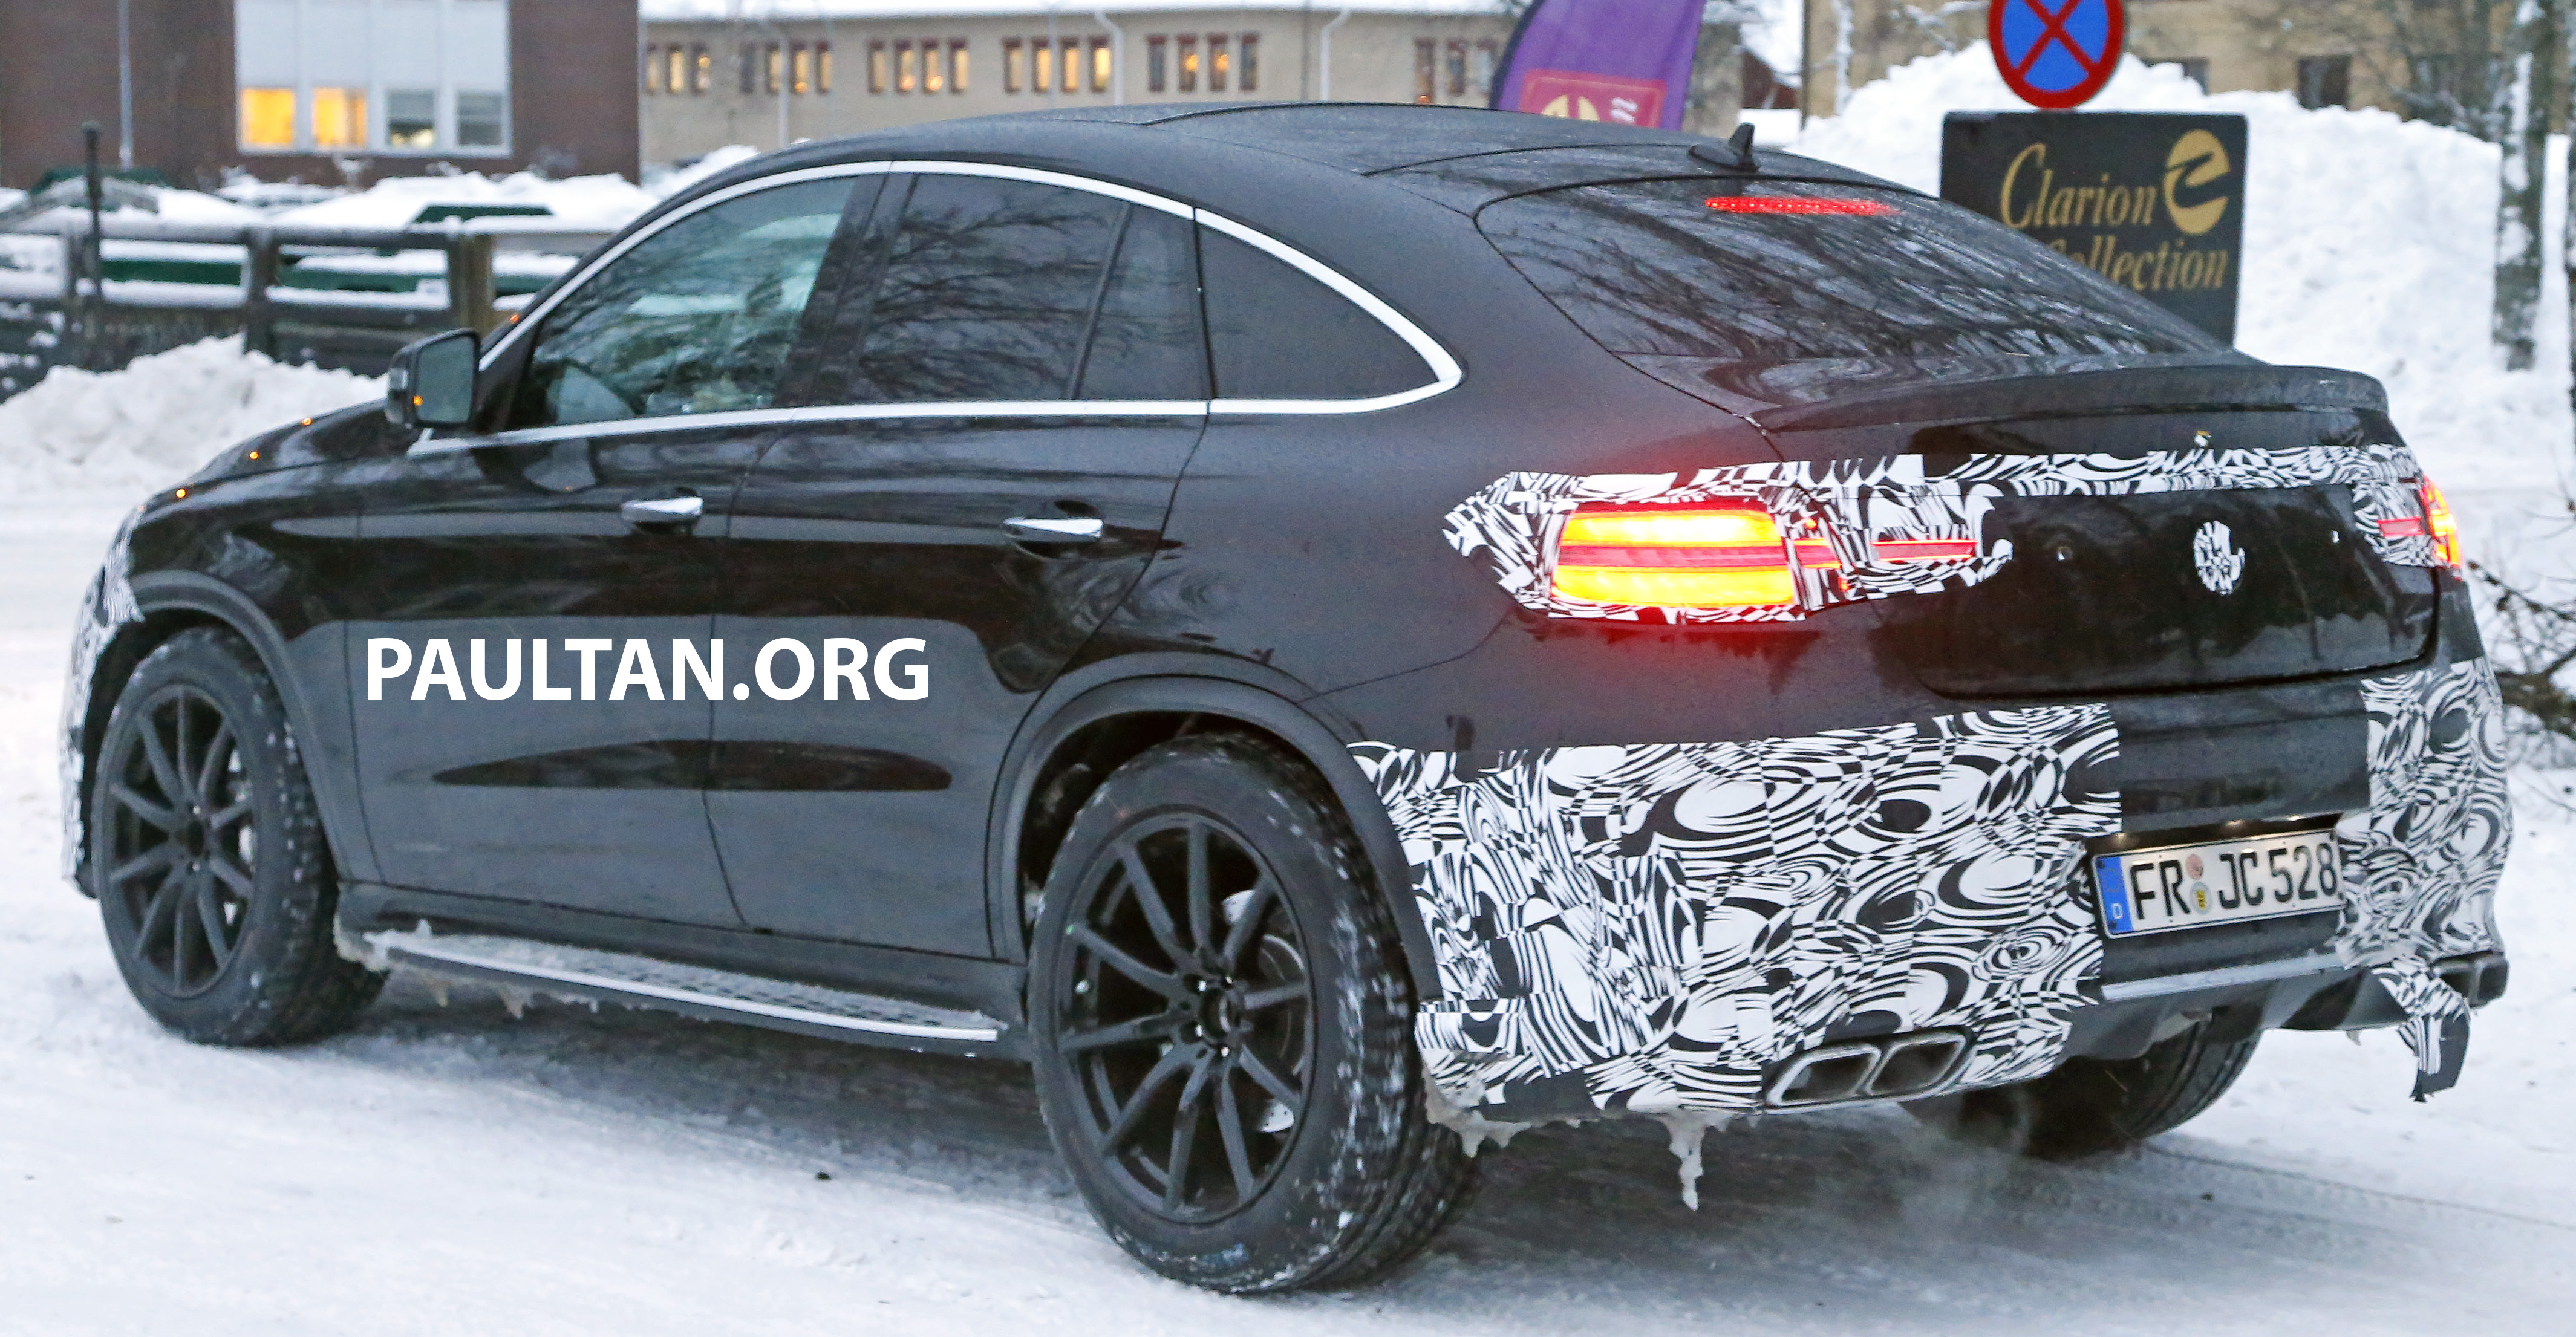 Mercedes Gle Coupe >> SPYSHOTS: Mercedes-Benz GLE Coupe winter-testing Paul Tan - Image 293770